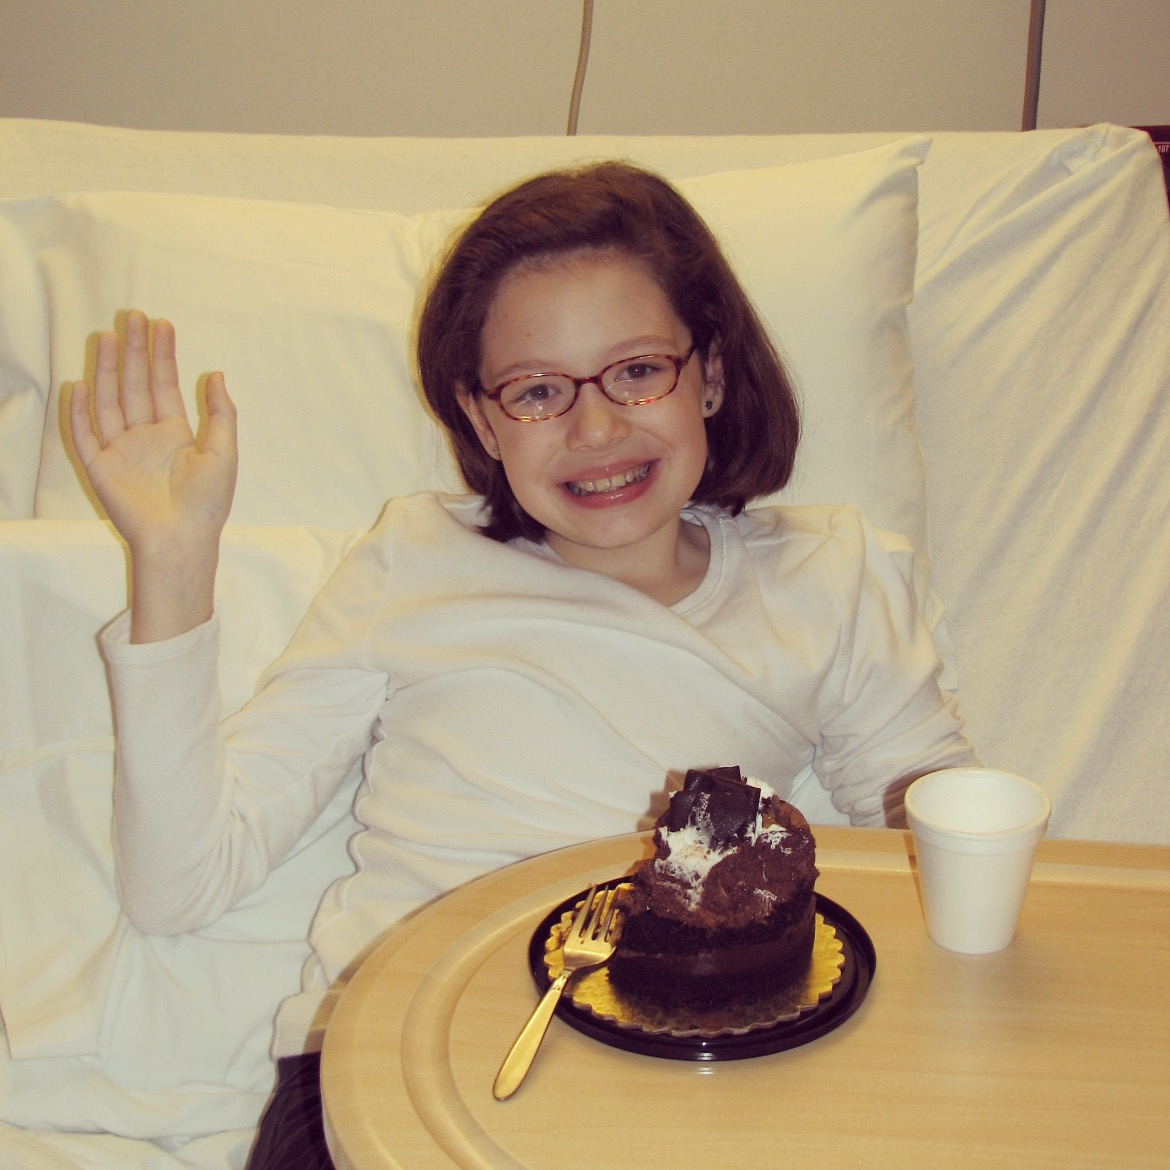 Georgia celebrating her tenth birthday in the hospital, where she learned she had acute lymphoblastic leukemia.